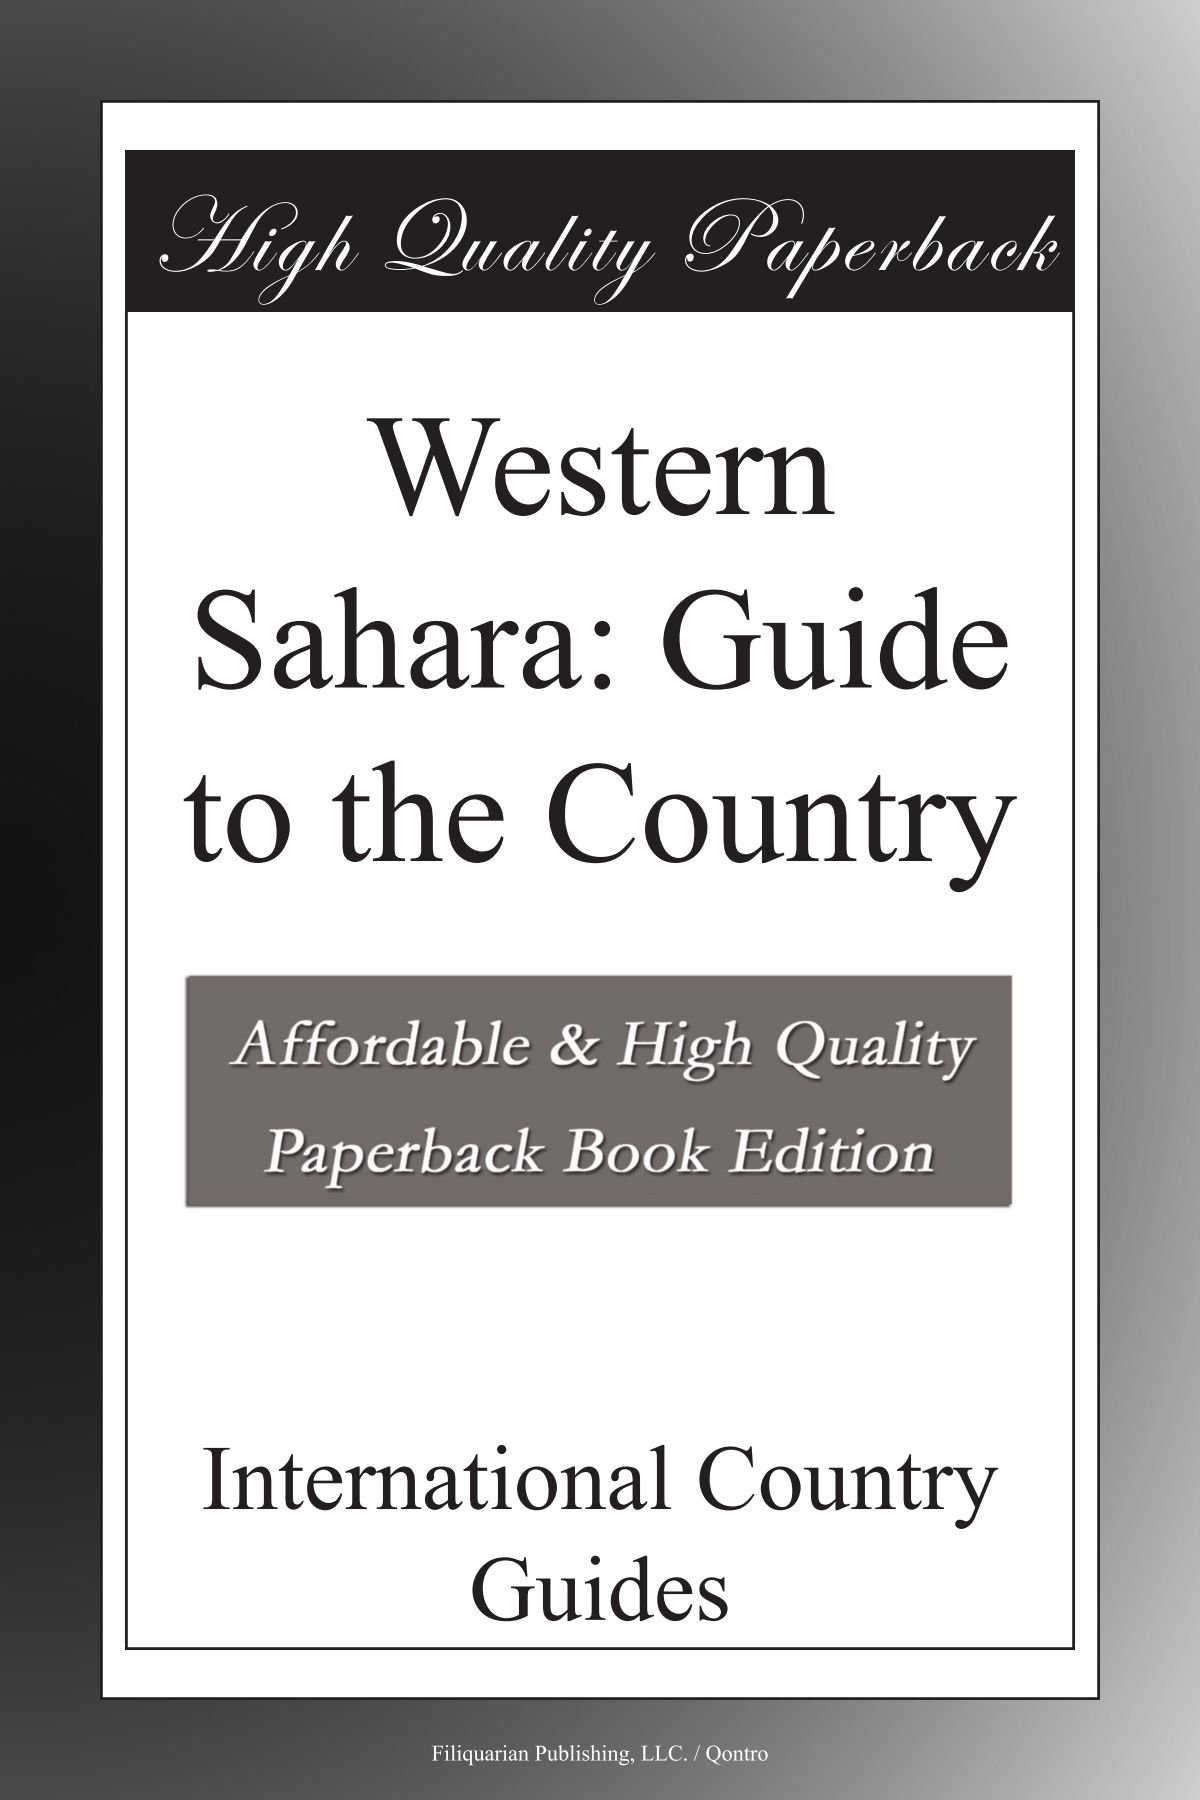 Western Sahara: Guide to the Country